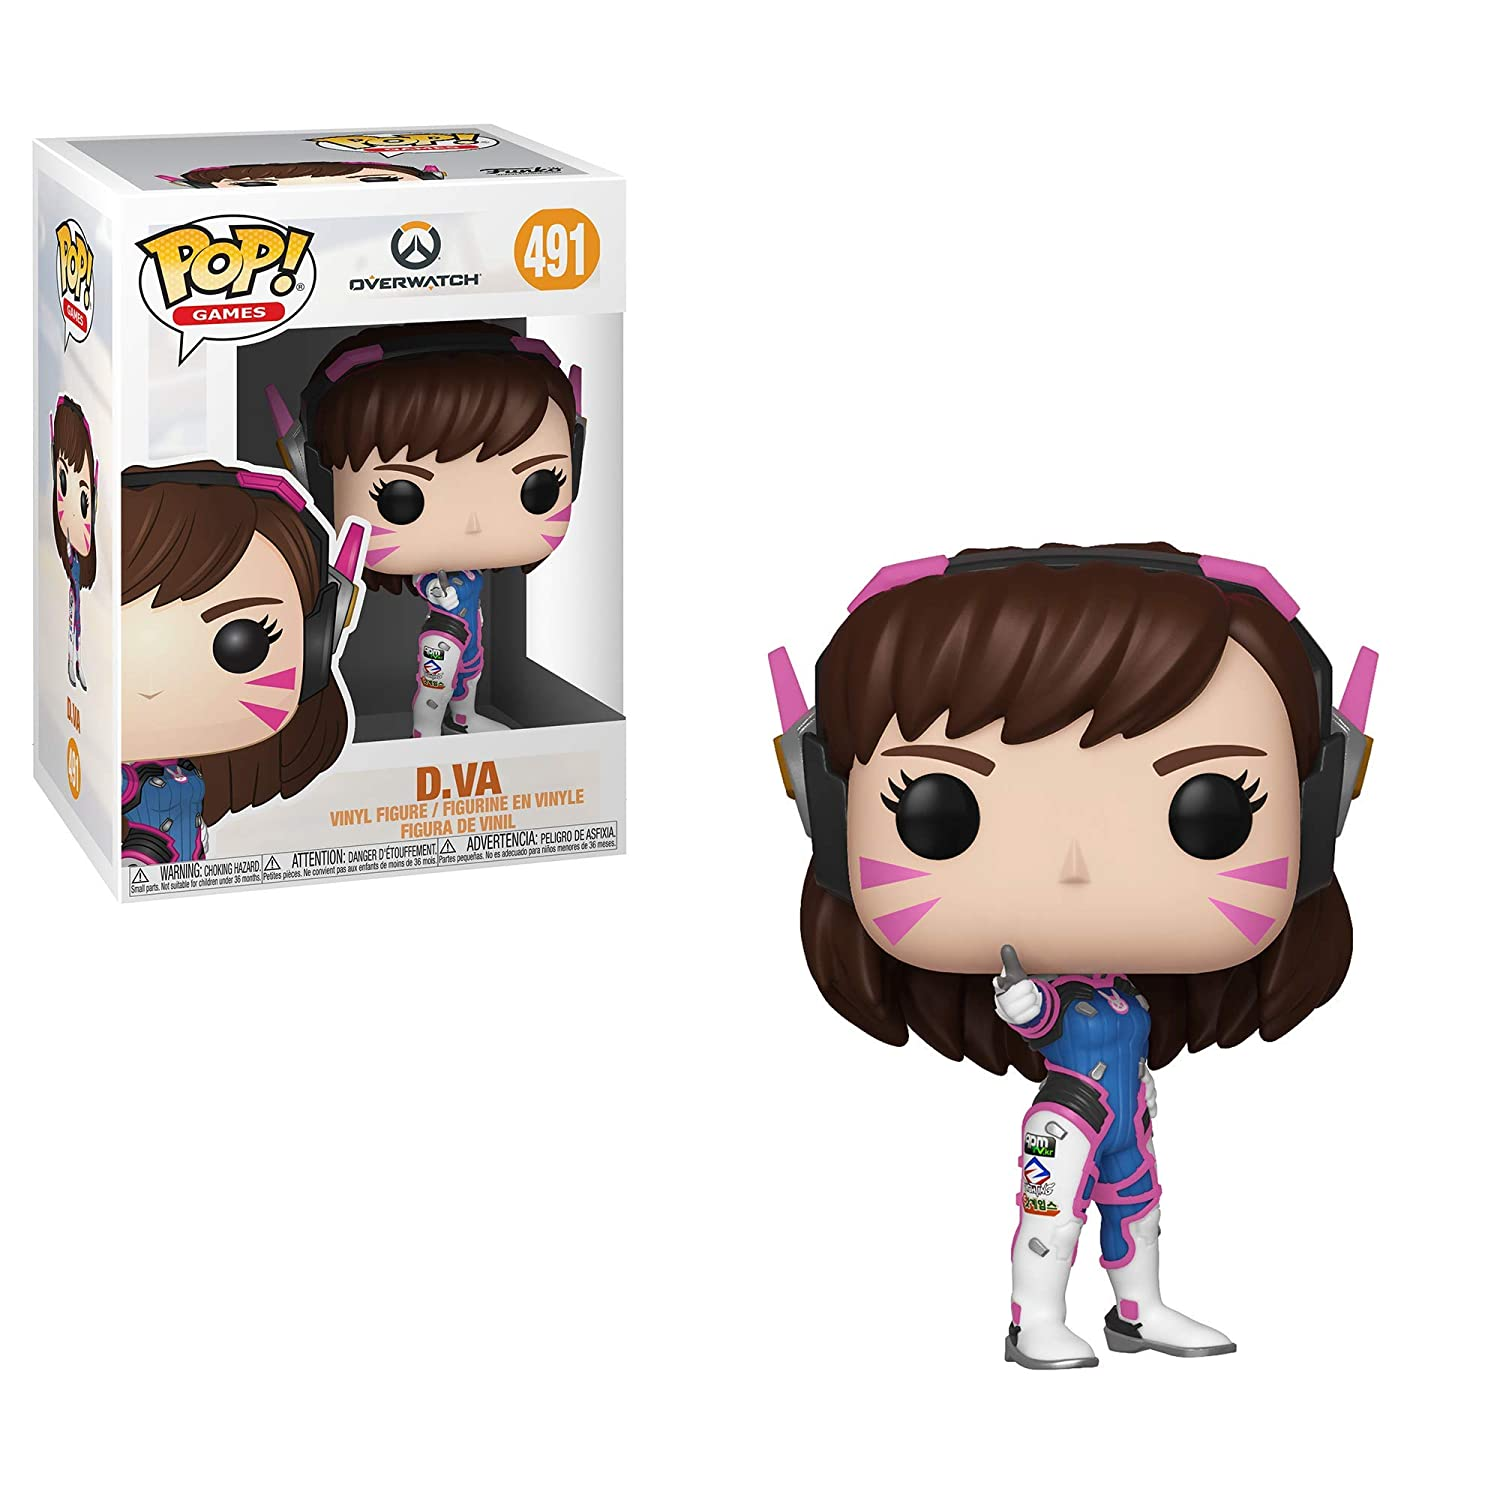 Brigitte Victory Pose and Pharah Funko Pop!: Bundle of 7: Overwatch Reaper 6 inch Bastion Wraith 6 inch Wrecking Ball Moira D.Va